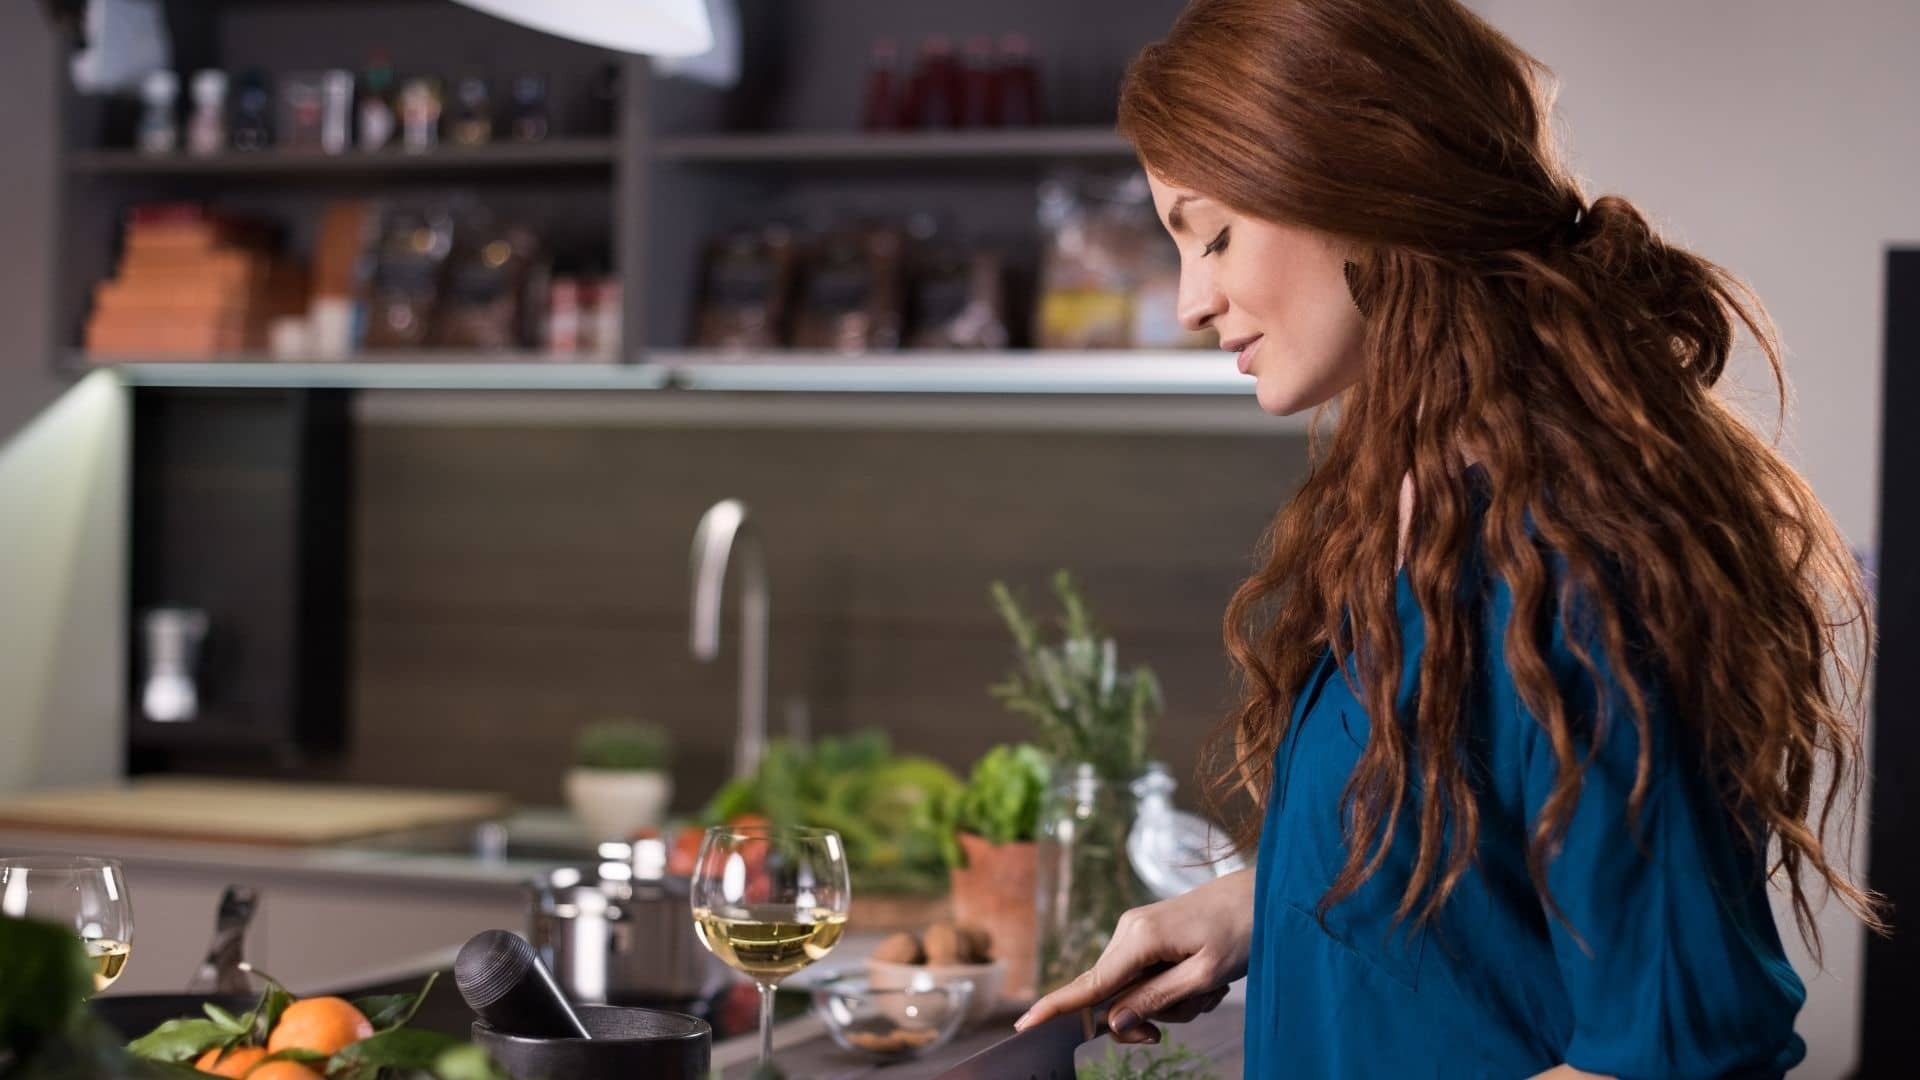 red-haired woman cooking with white wine